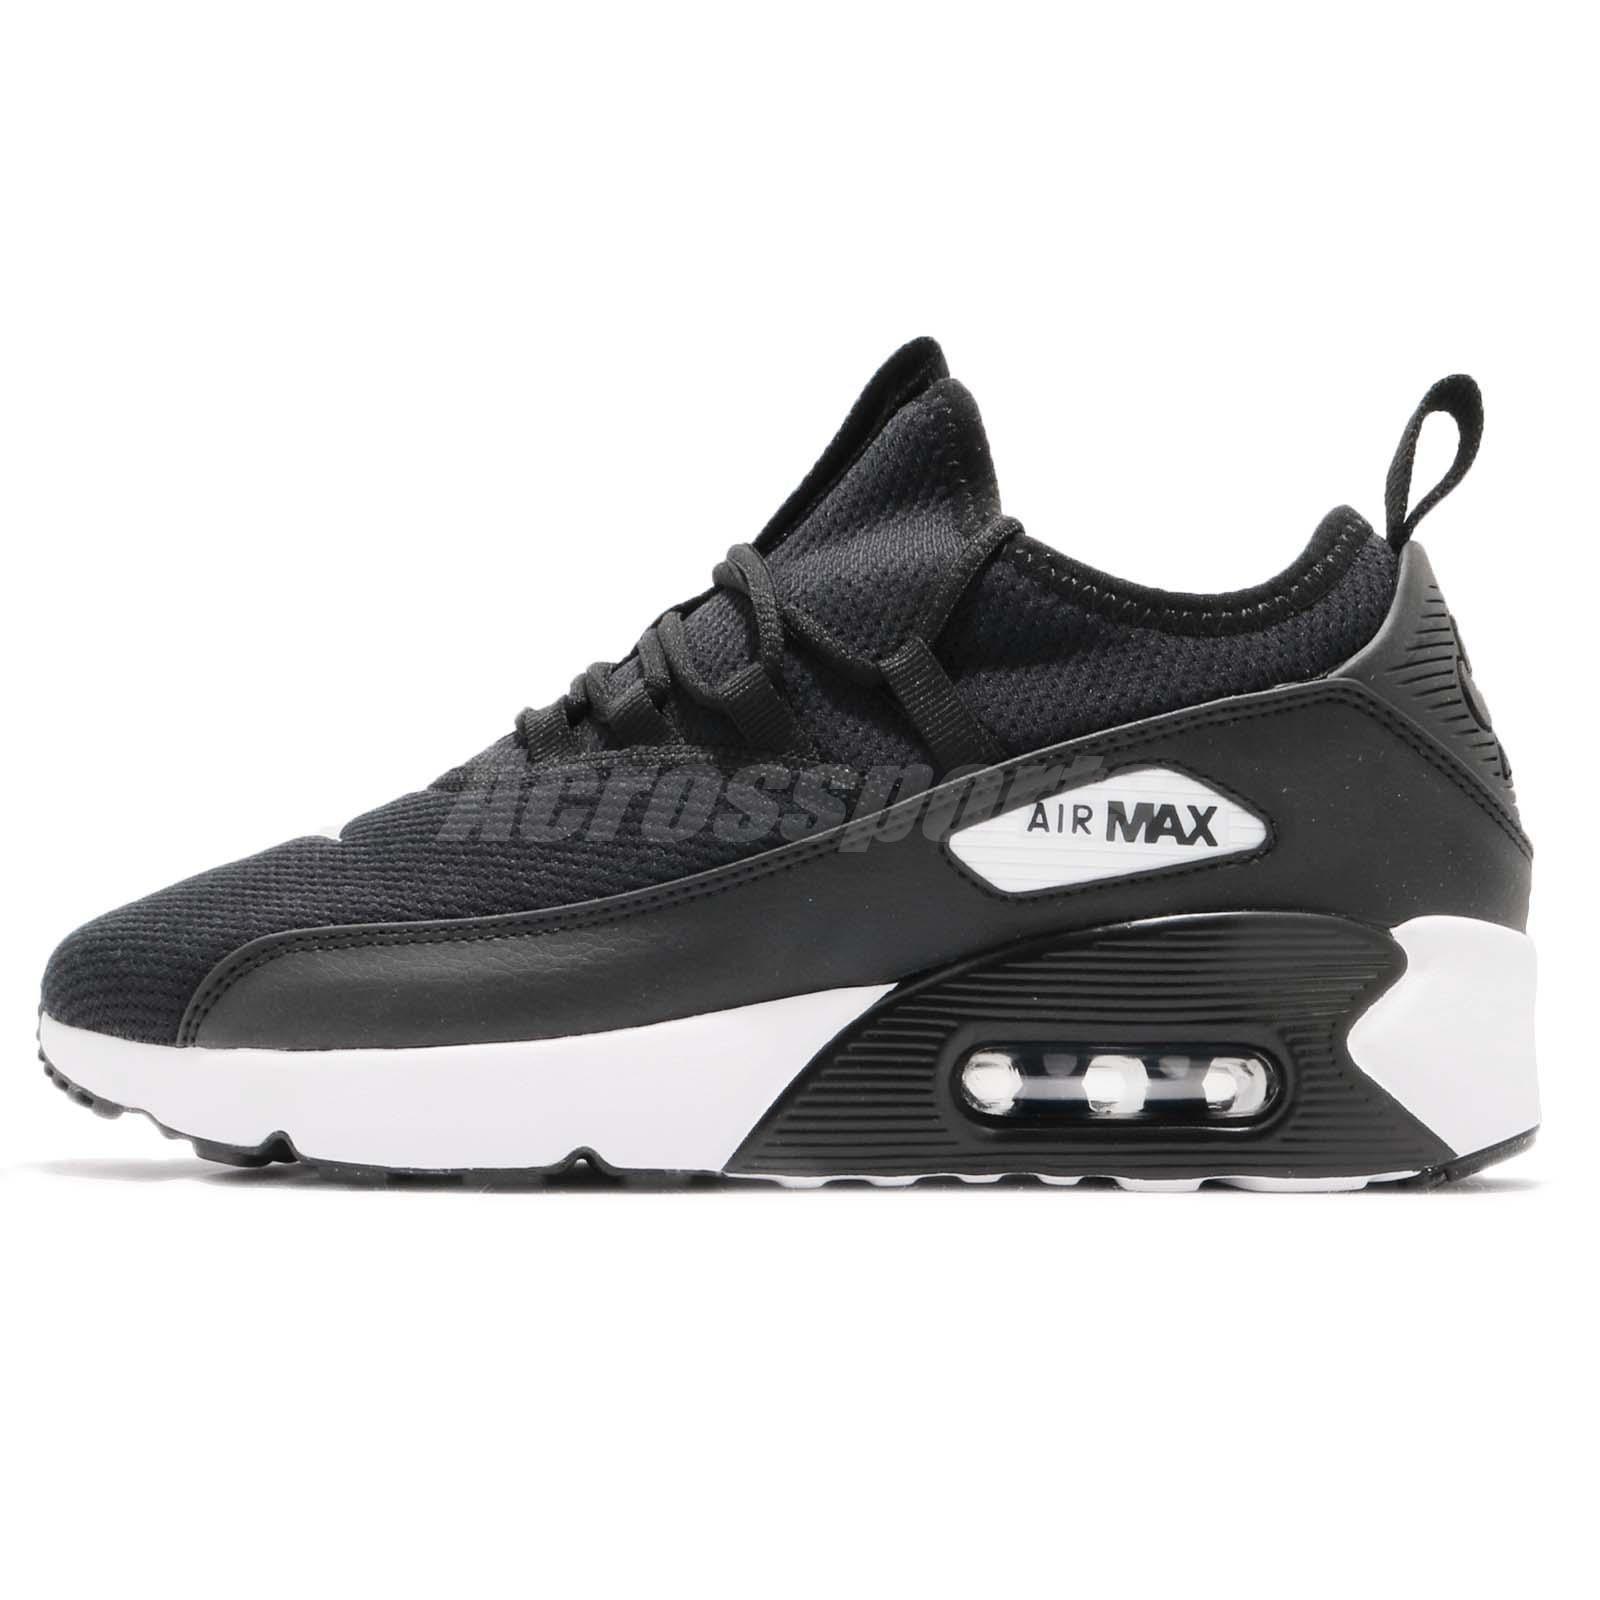 best sneakers 558c8 a5f45 Nike Wmns Air Max 90 EZ Black White Women Running Shoes Sneakers AO1520-003